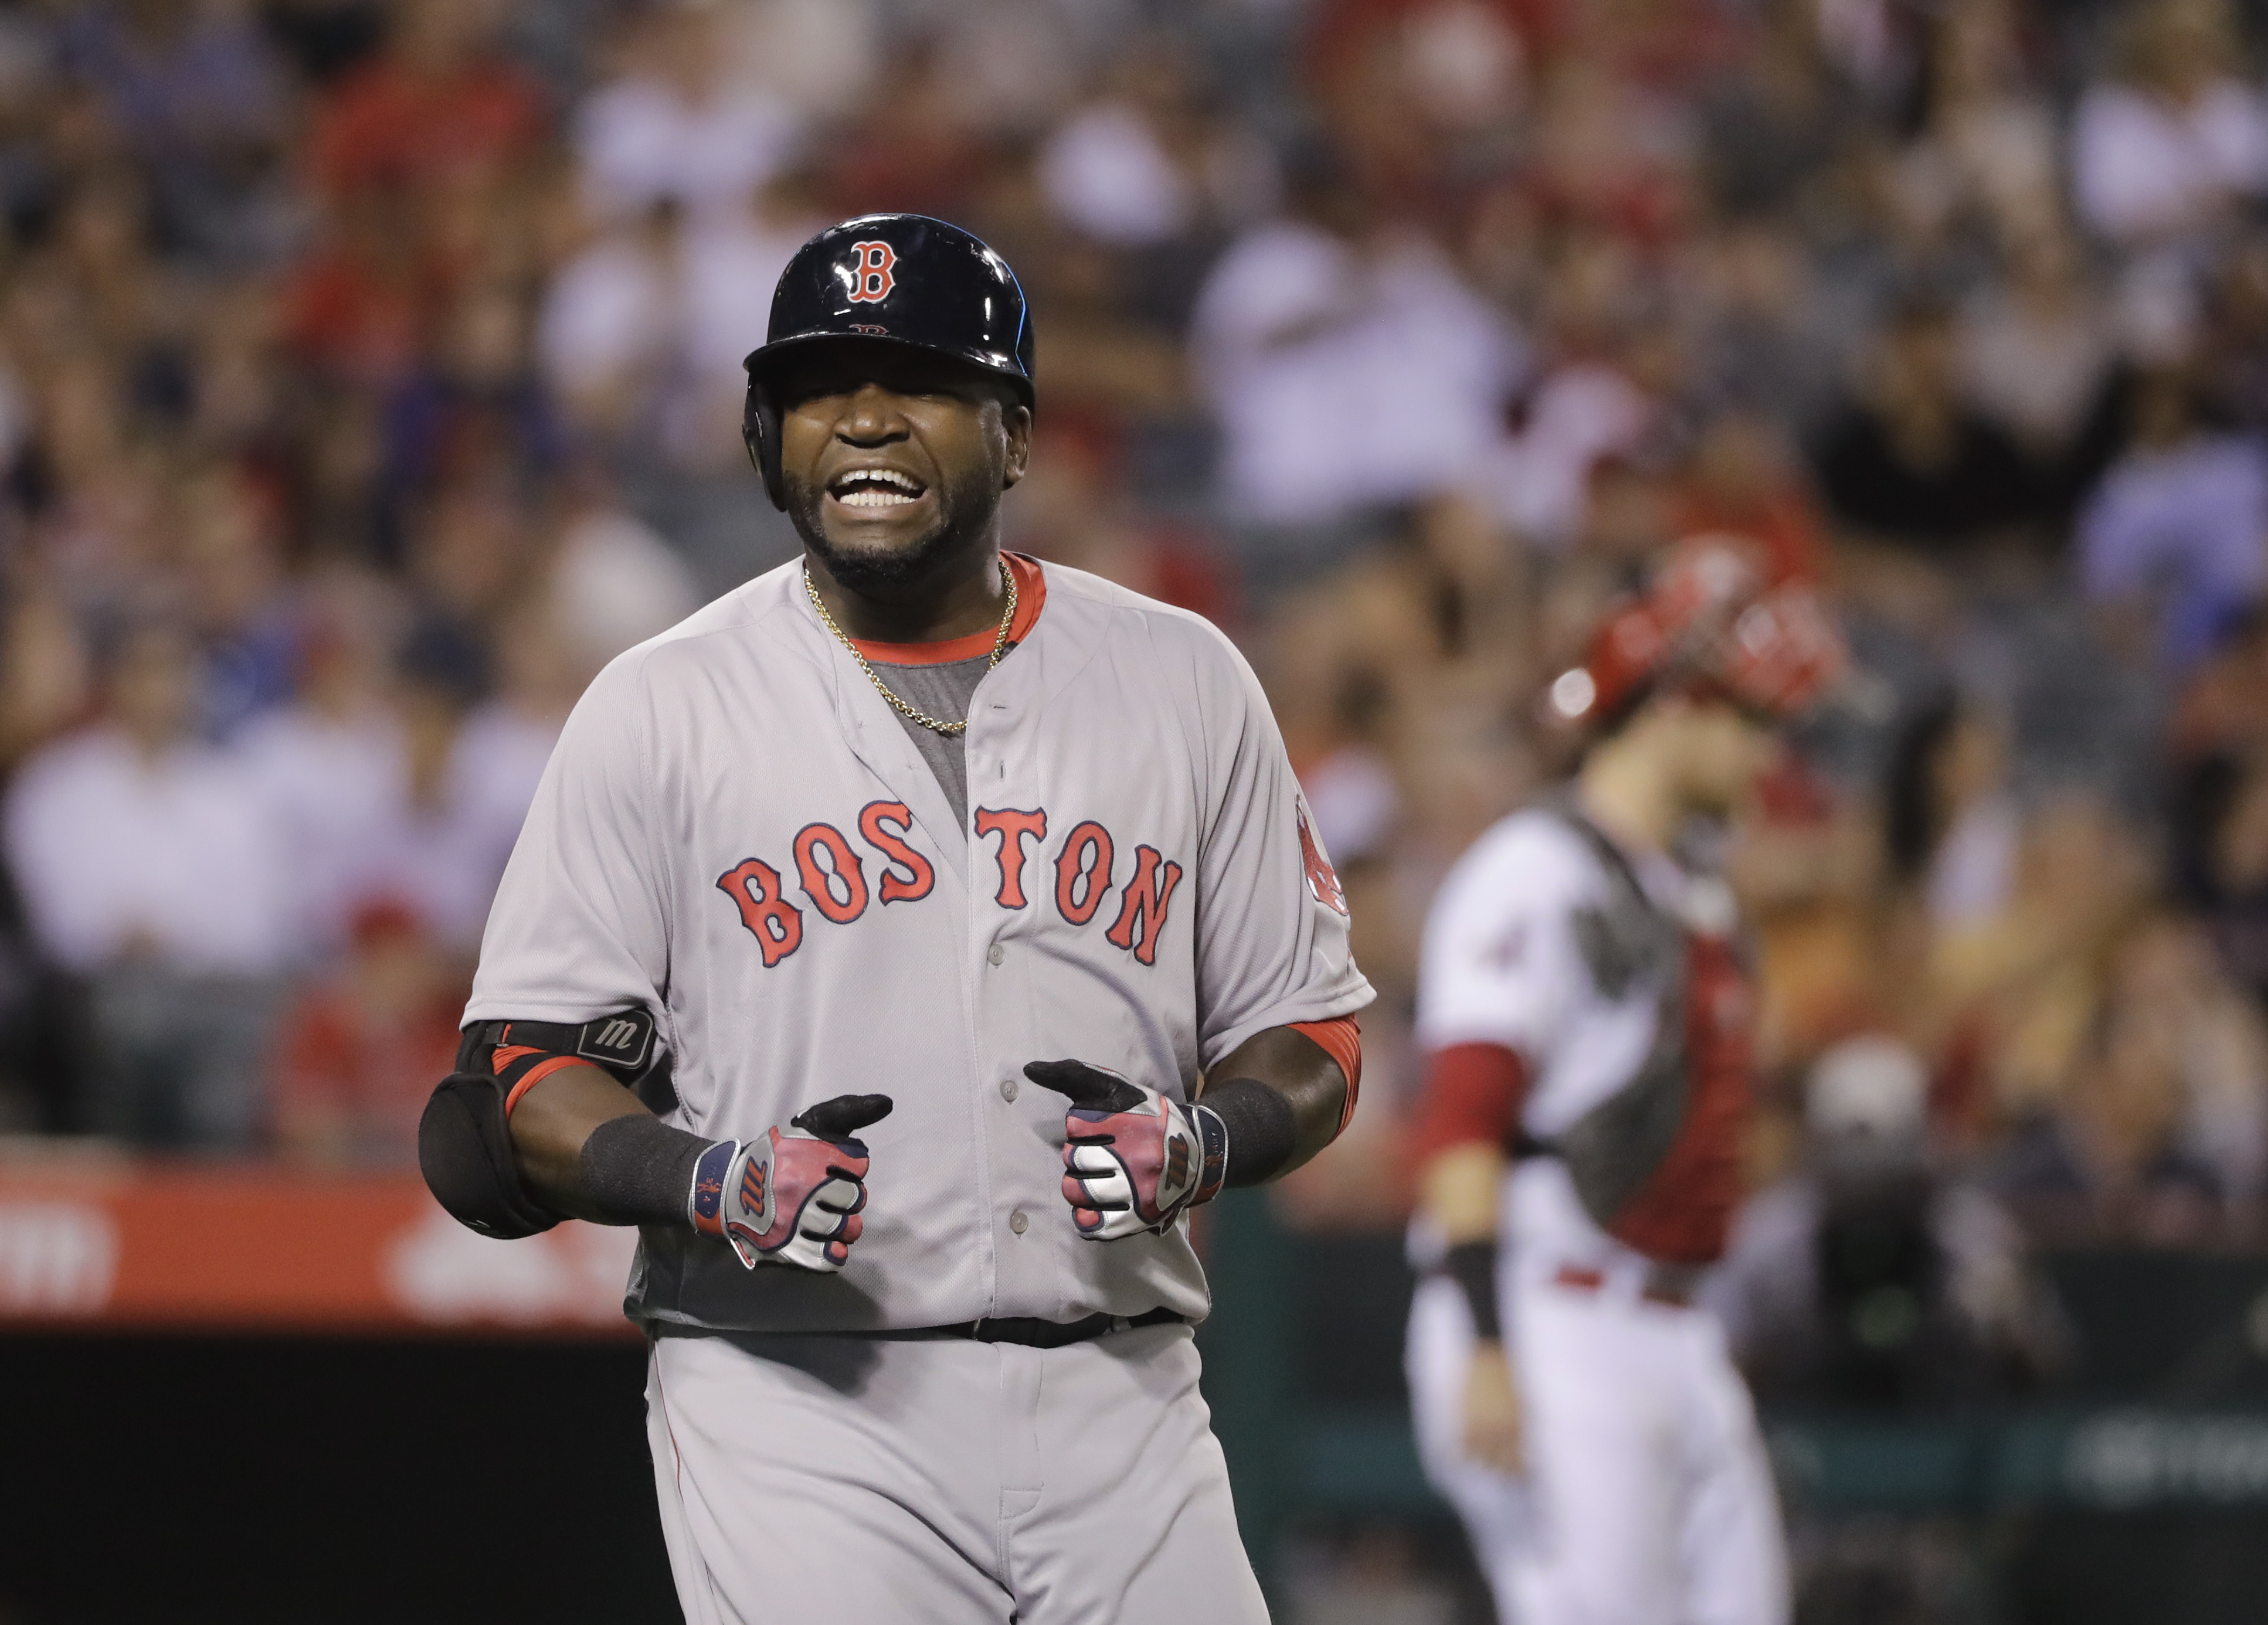 Boston Red Sox's David Ortiz reacts after he flied out during the ninth inning of a baseball game against the Los Angeles Angels, Thursday, July 28, 2016, in Anaheim, Calif. The Angels won 2-1. (AP Photo/Jae C. Hong)